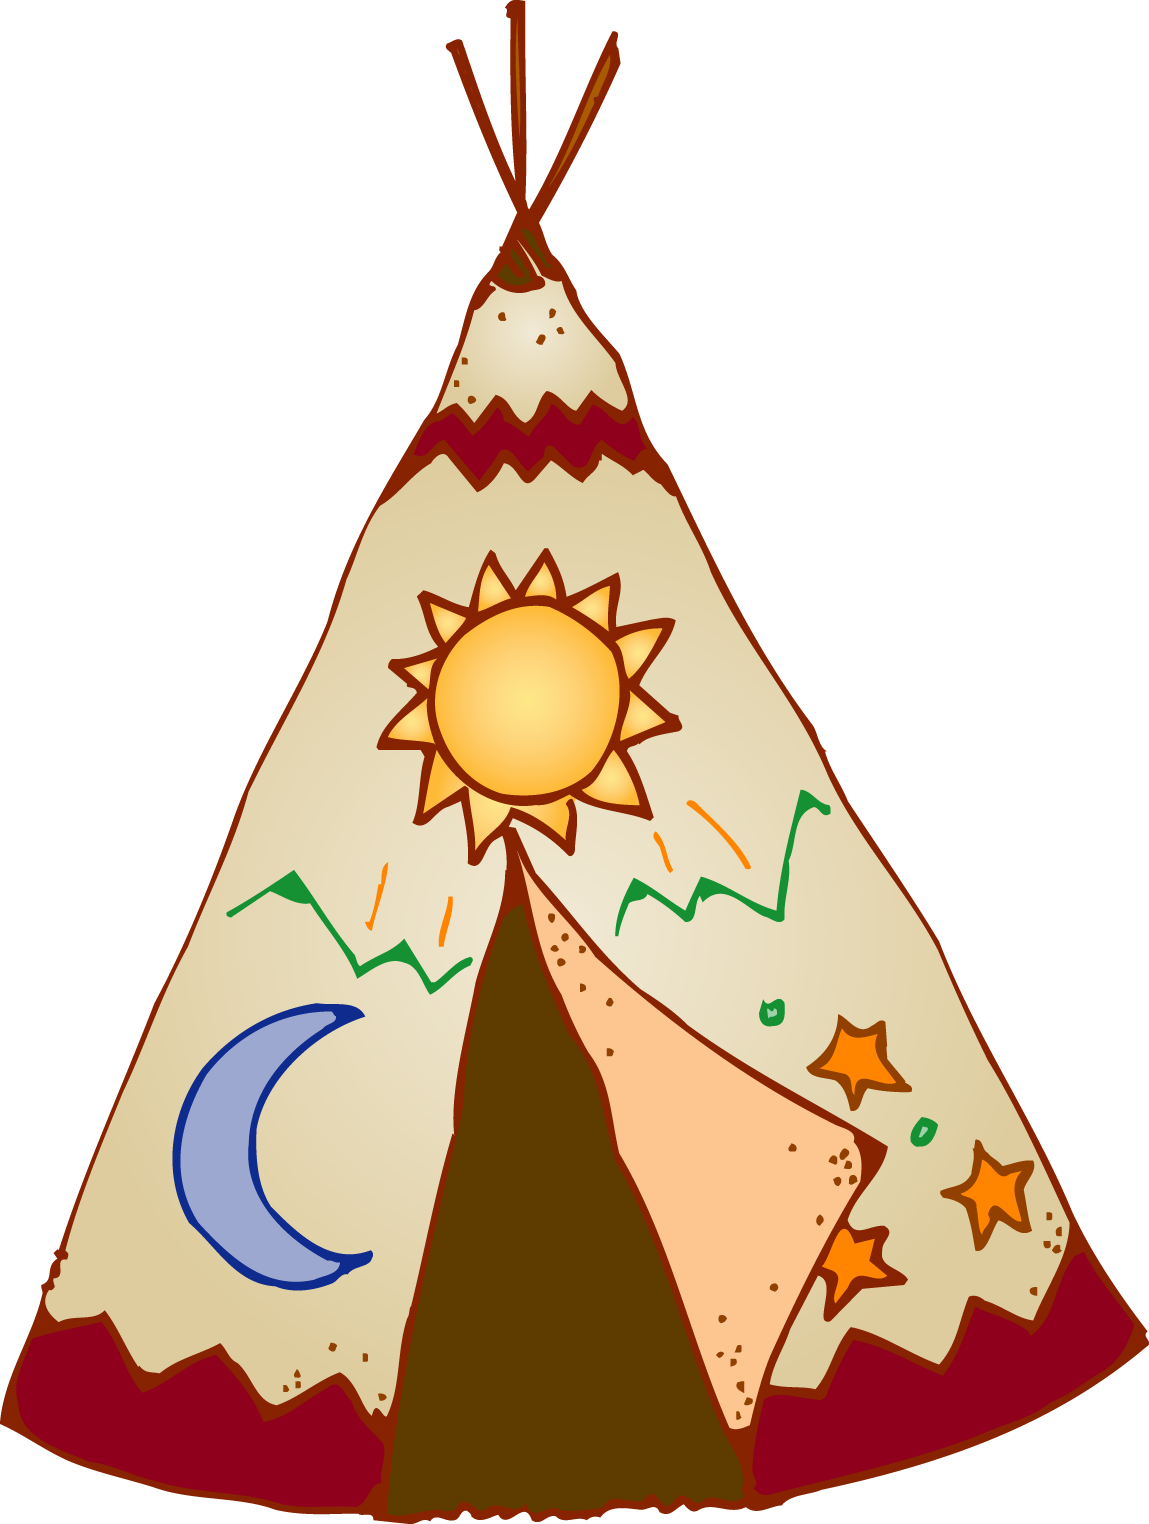 Teepee Clipart At Getdrawings.